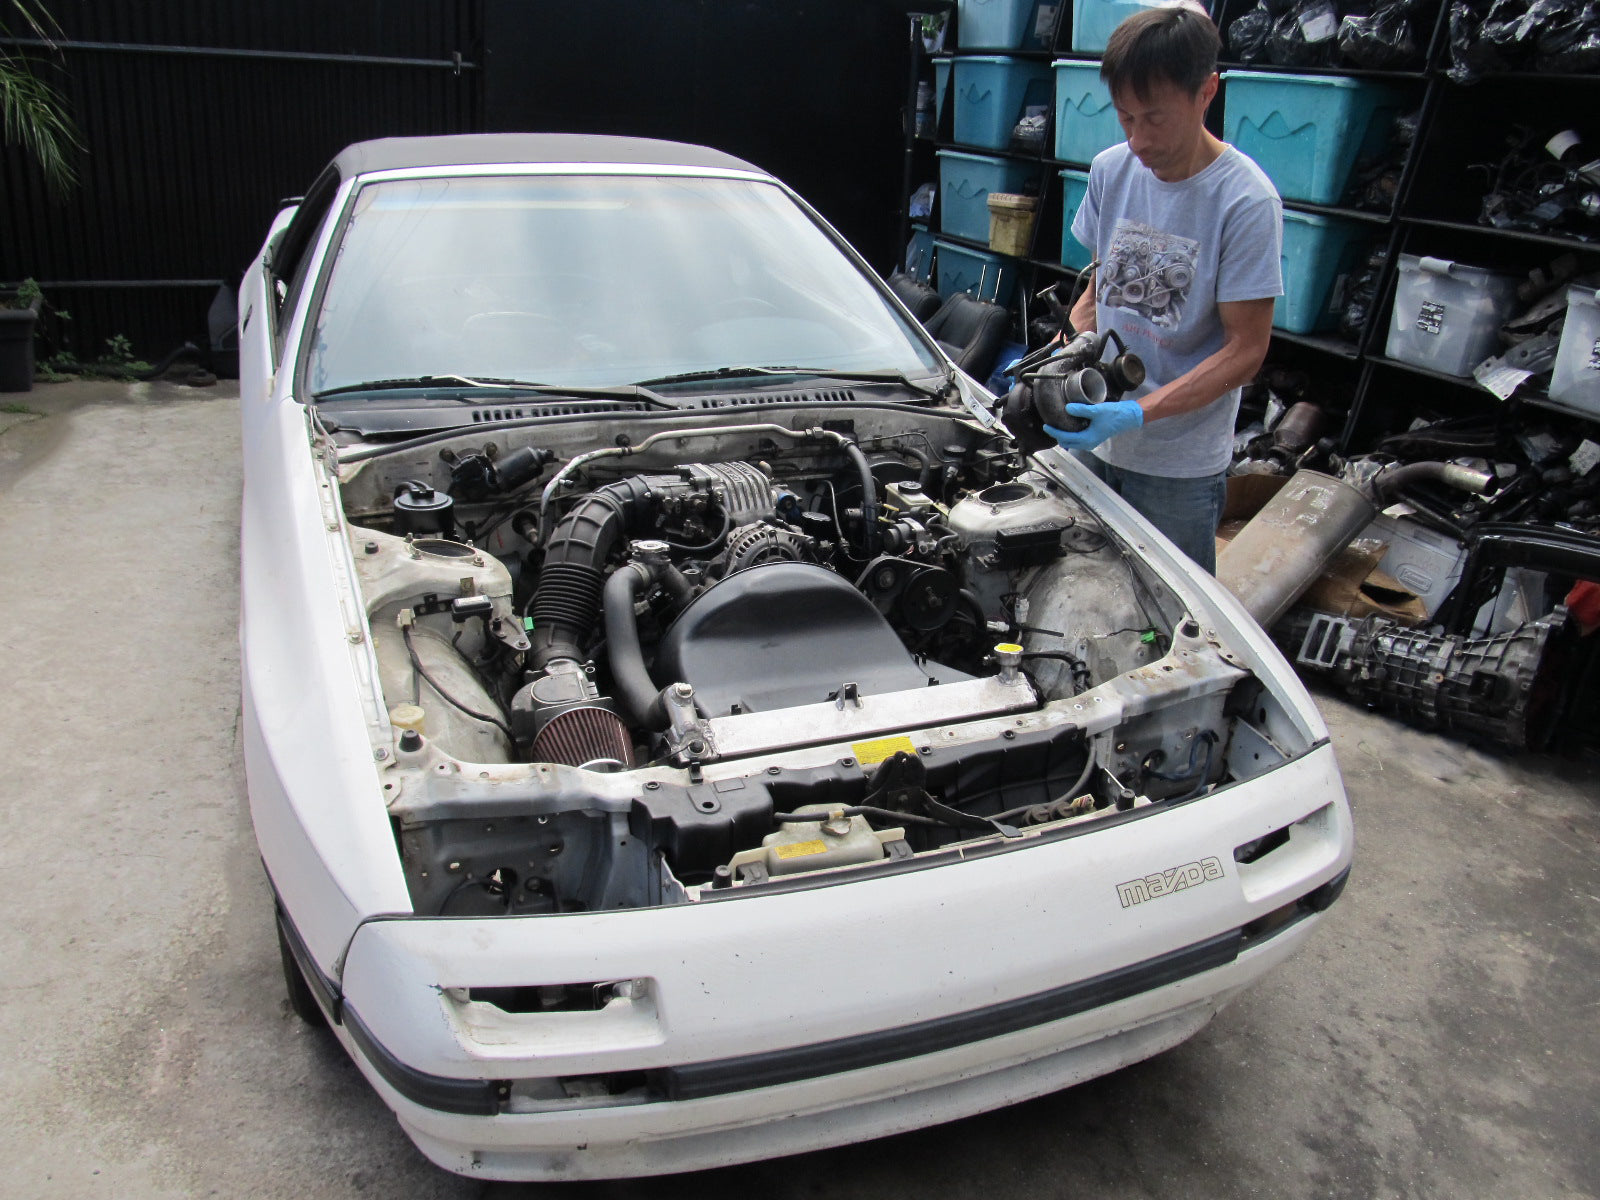 88 RX7 Convertible 13B 5spd N/A - AP1 Project